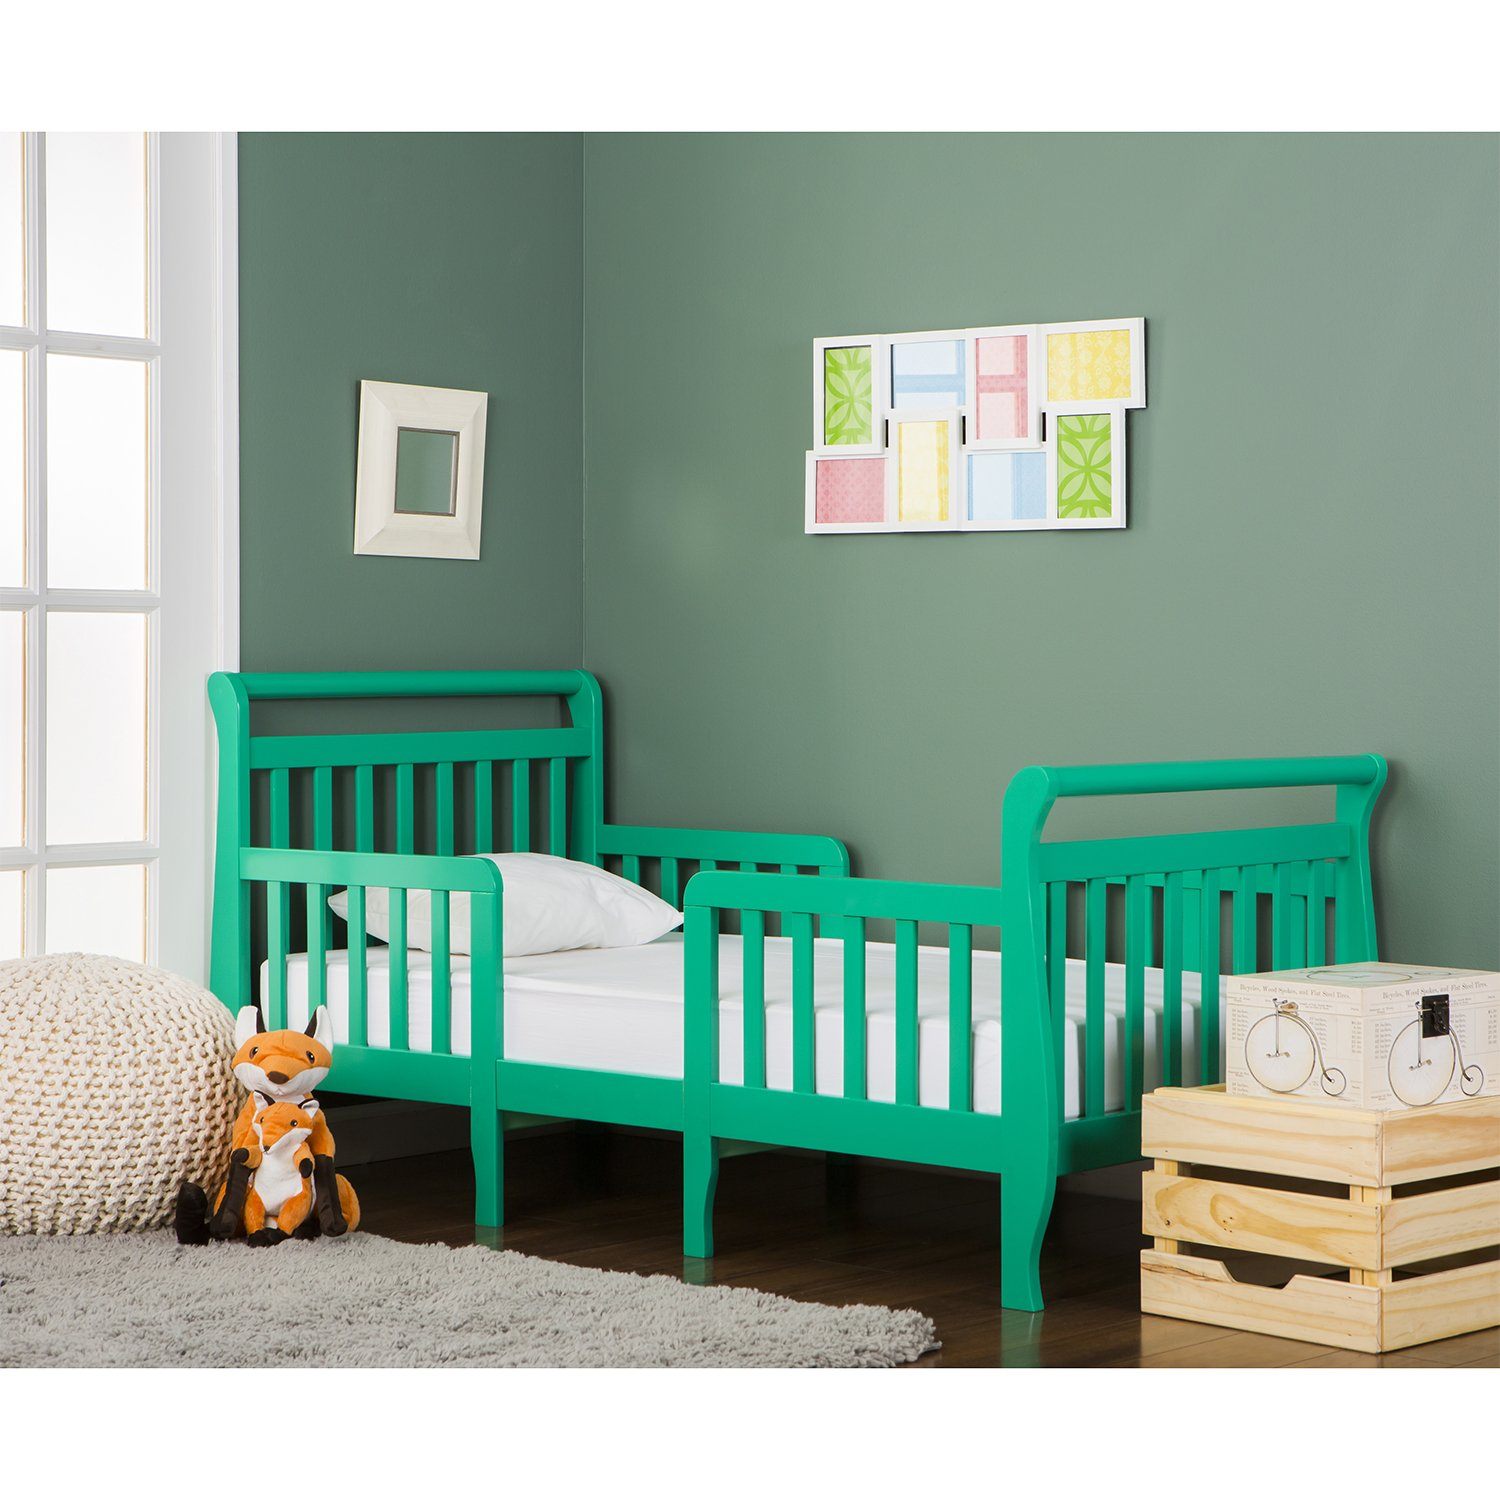 Dream On Me Emma 3 in 1 Convertible Toddler Bed, Emerald